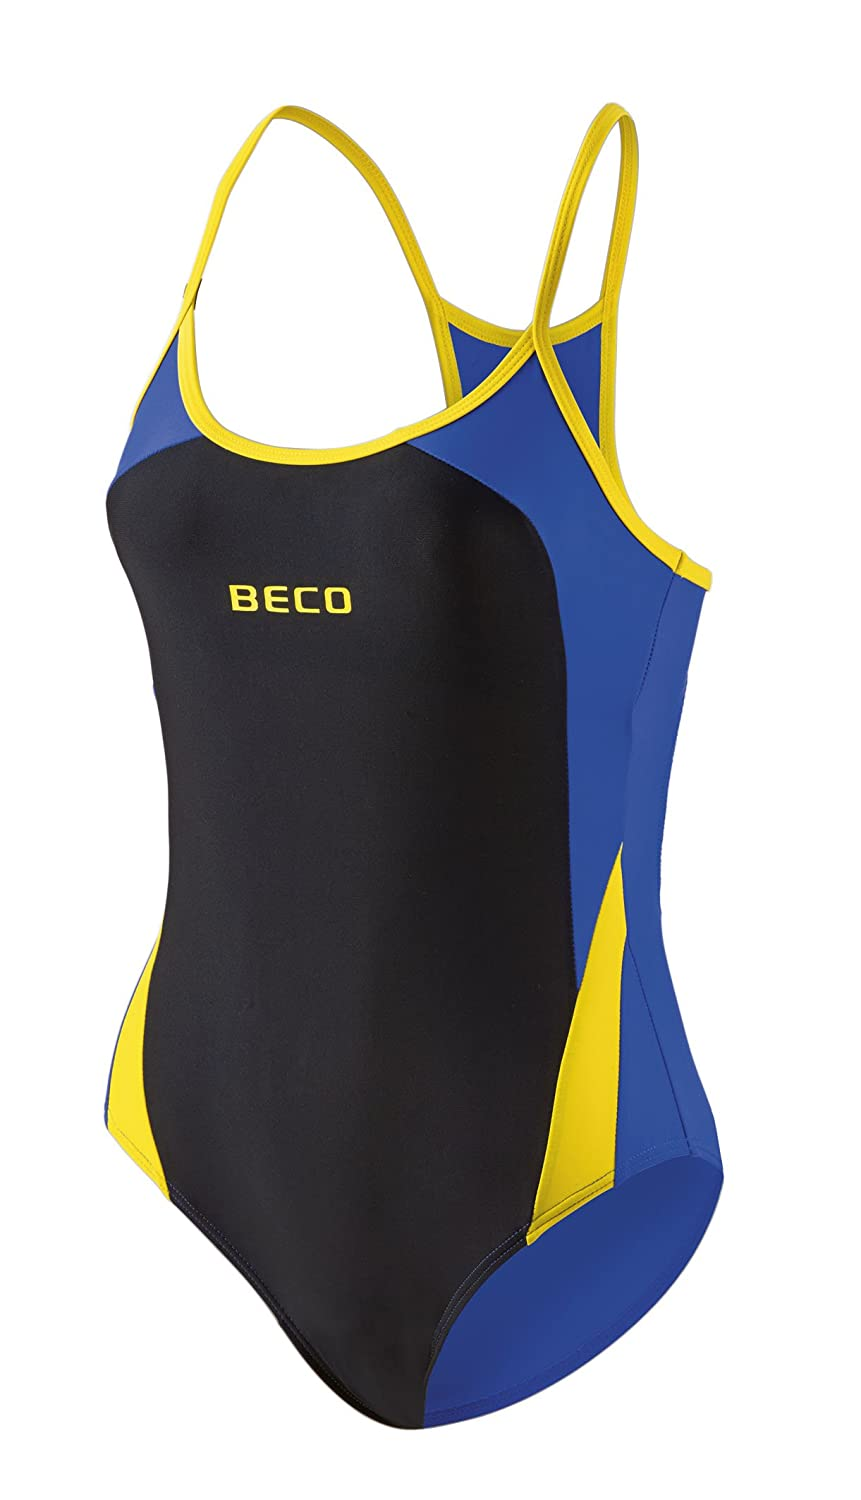 BECO Womens Swimming Costume Aqua Multi-Coloured